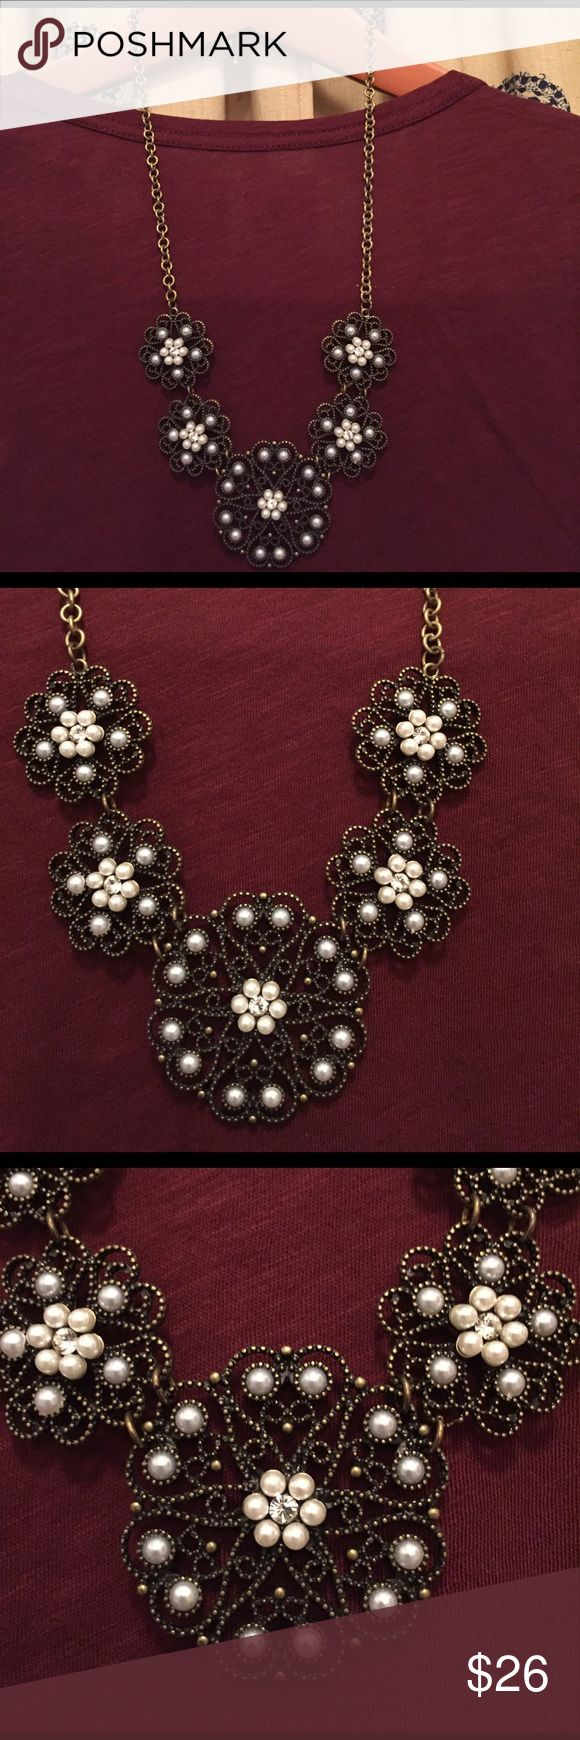 """Susan Graver Necklace Susan Graver Necklace - Brass tone necklace with white/light grey pearls and crystals. It measures 23"""" when laying flat but the necklace curves so measures Approx. 26"""" Excellent condition. Susan Graver Jewelry Necklaces"""